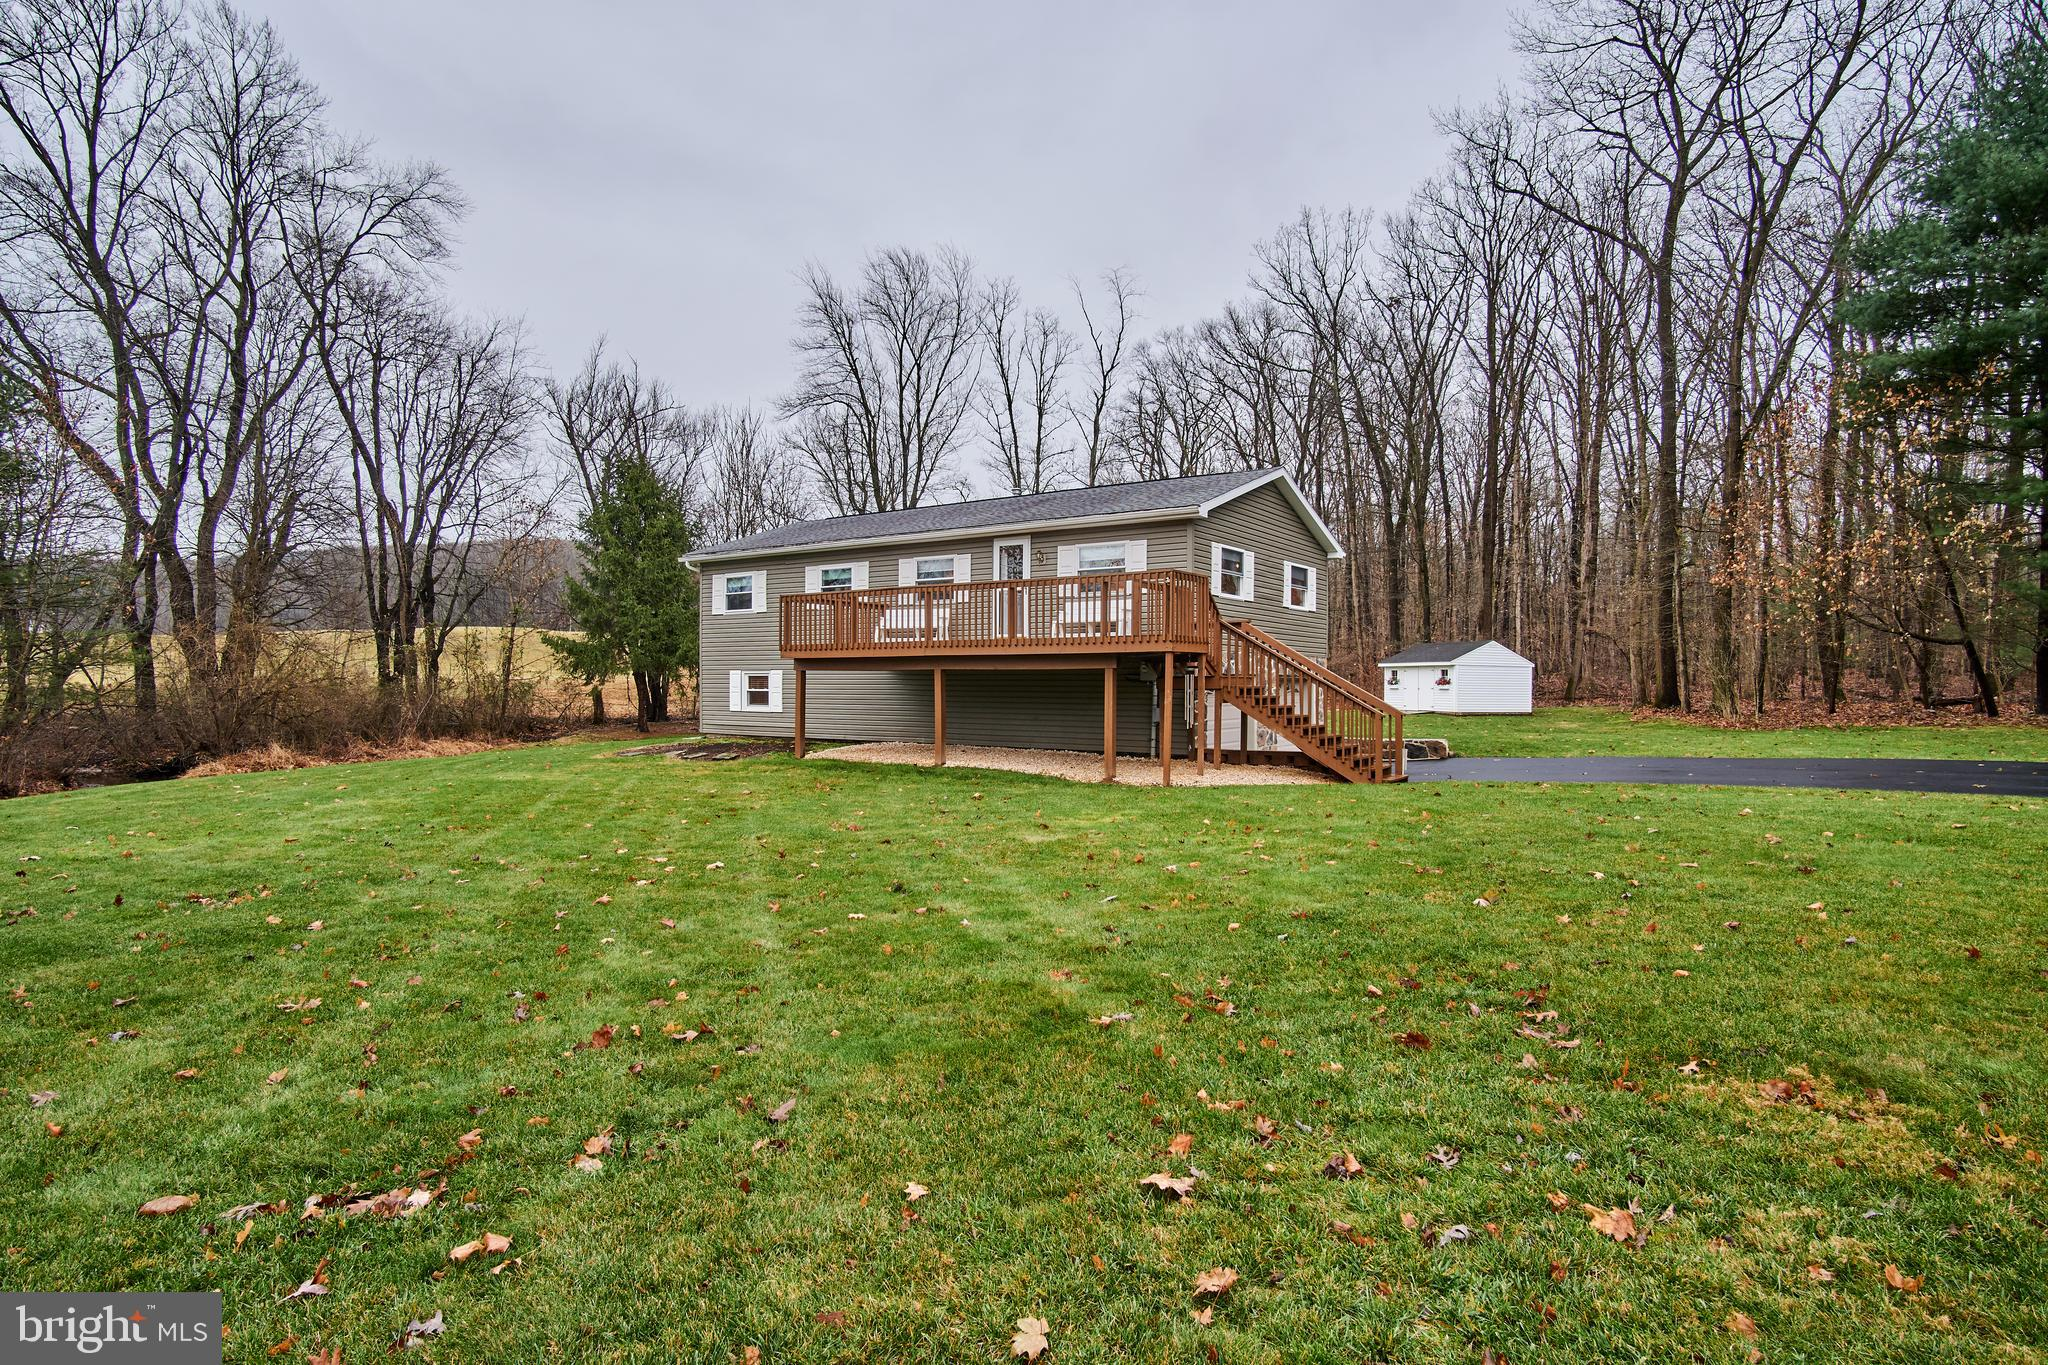 529 MOUNTAIN ROAD, BOILING SPRINGS, PA 17007